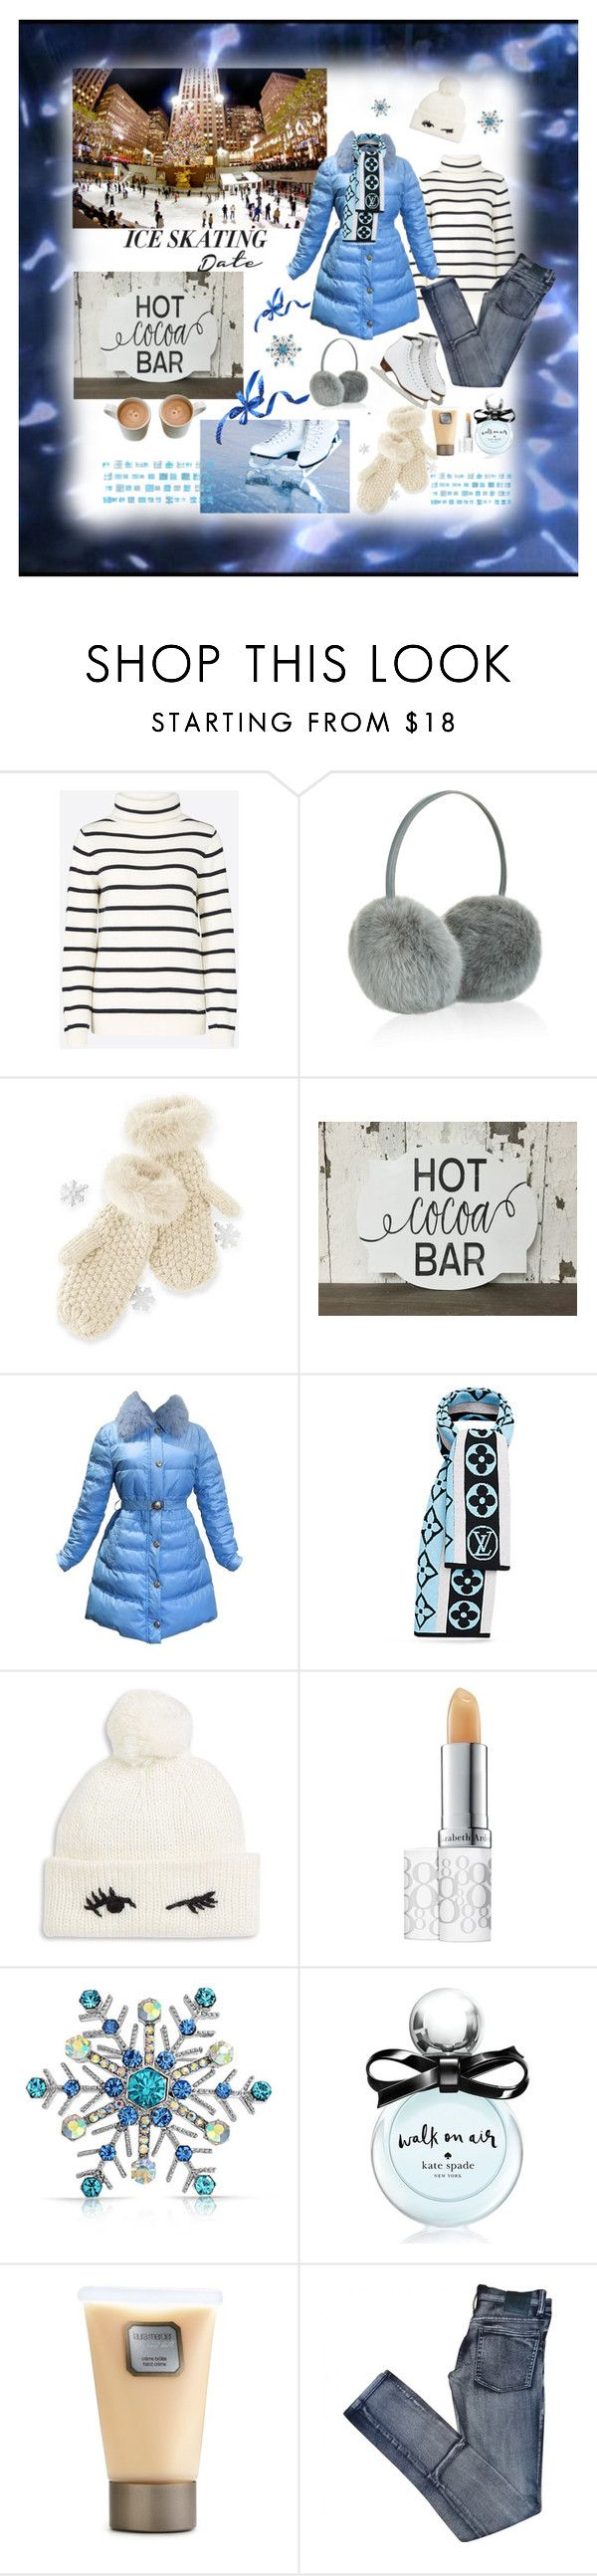 """Ice skating"" by deborah-518 ❤ liked on Polyvore featuring Armor-Lux, Accessorize, Mark & Graham, Versace, Kate Spade, Elizabeth Arden, Bling Jewelry, Laura Mercier and Cheap Monday"